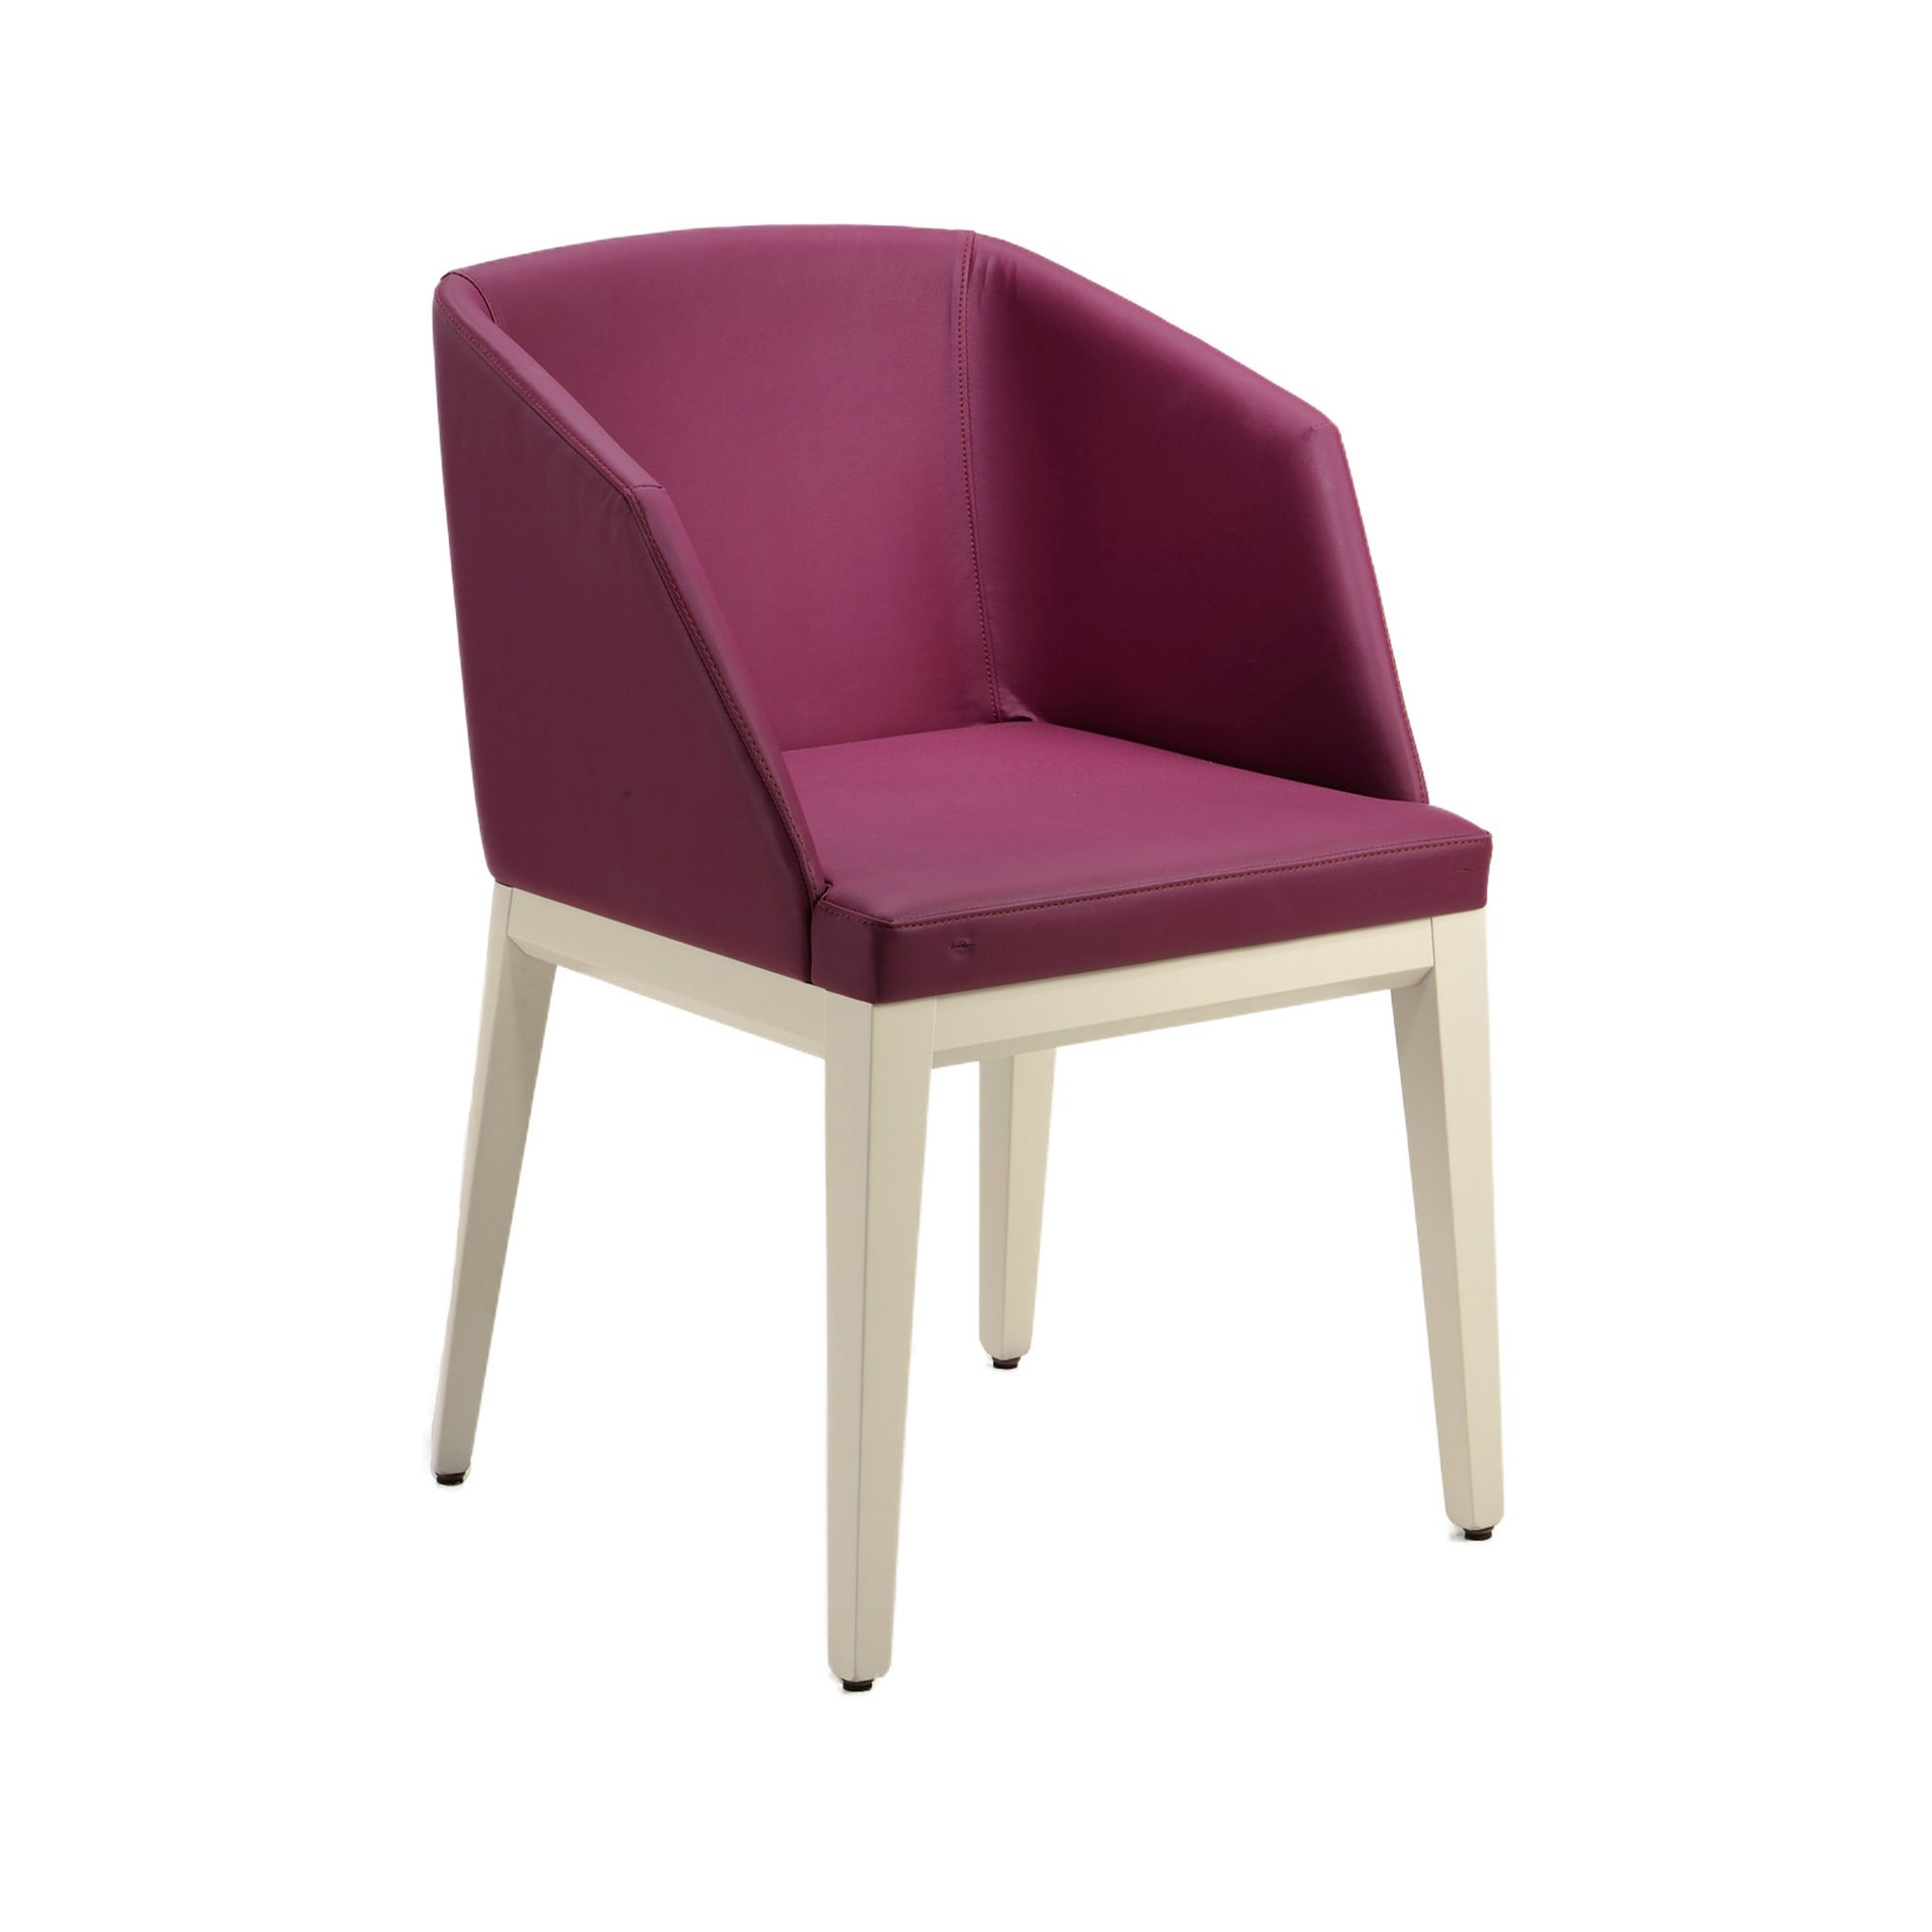 Model 851 armchair in style